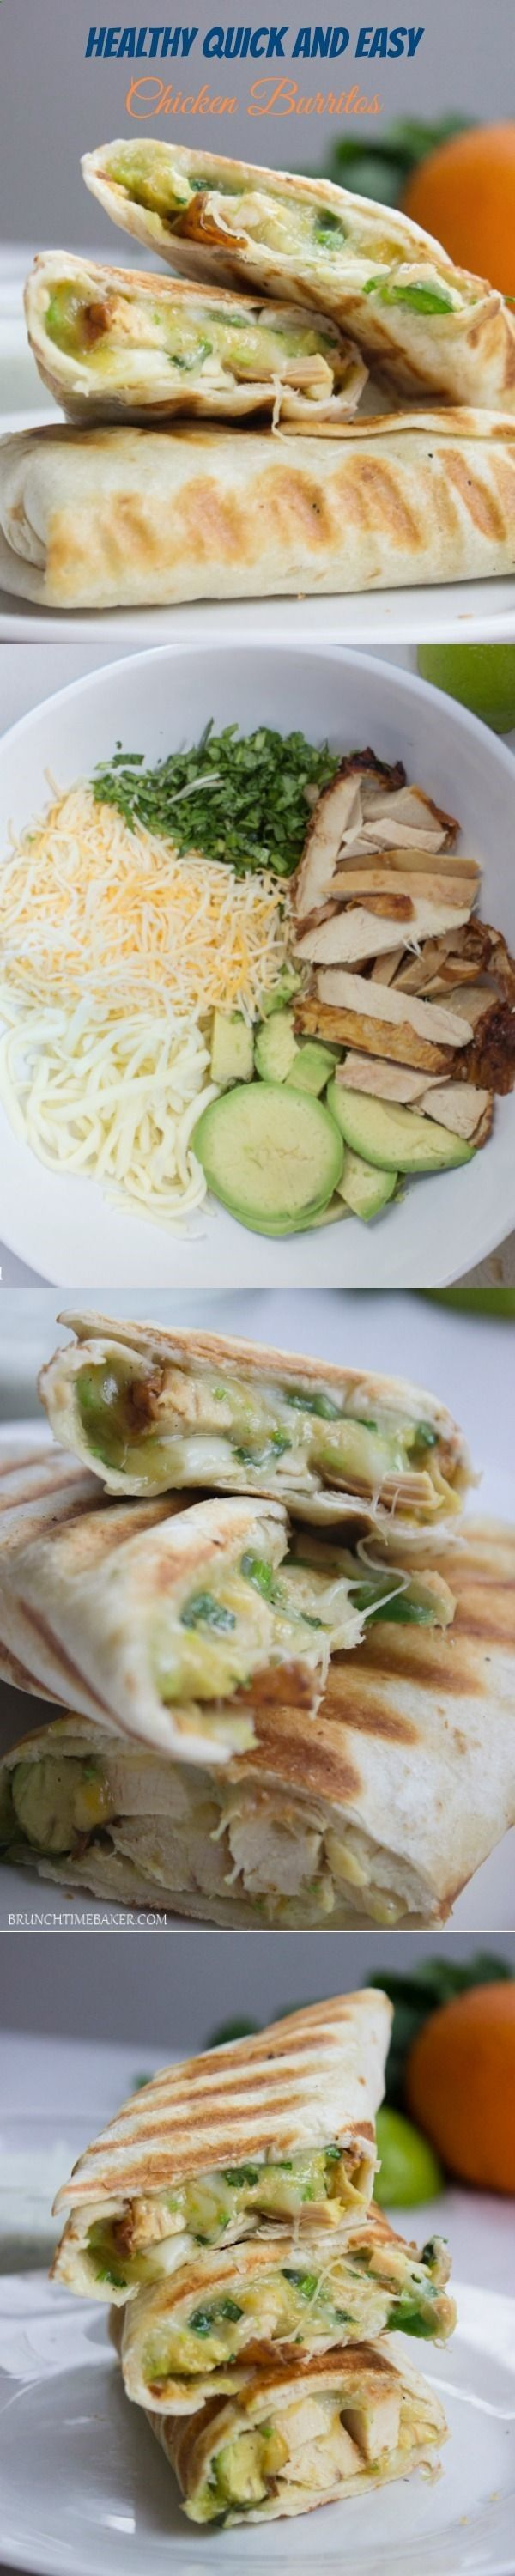 Chicken Avocado Burritos - not as good as they look in the picture but good and fast. I think my tortillas were too small